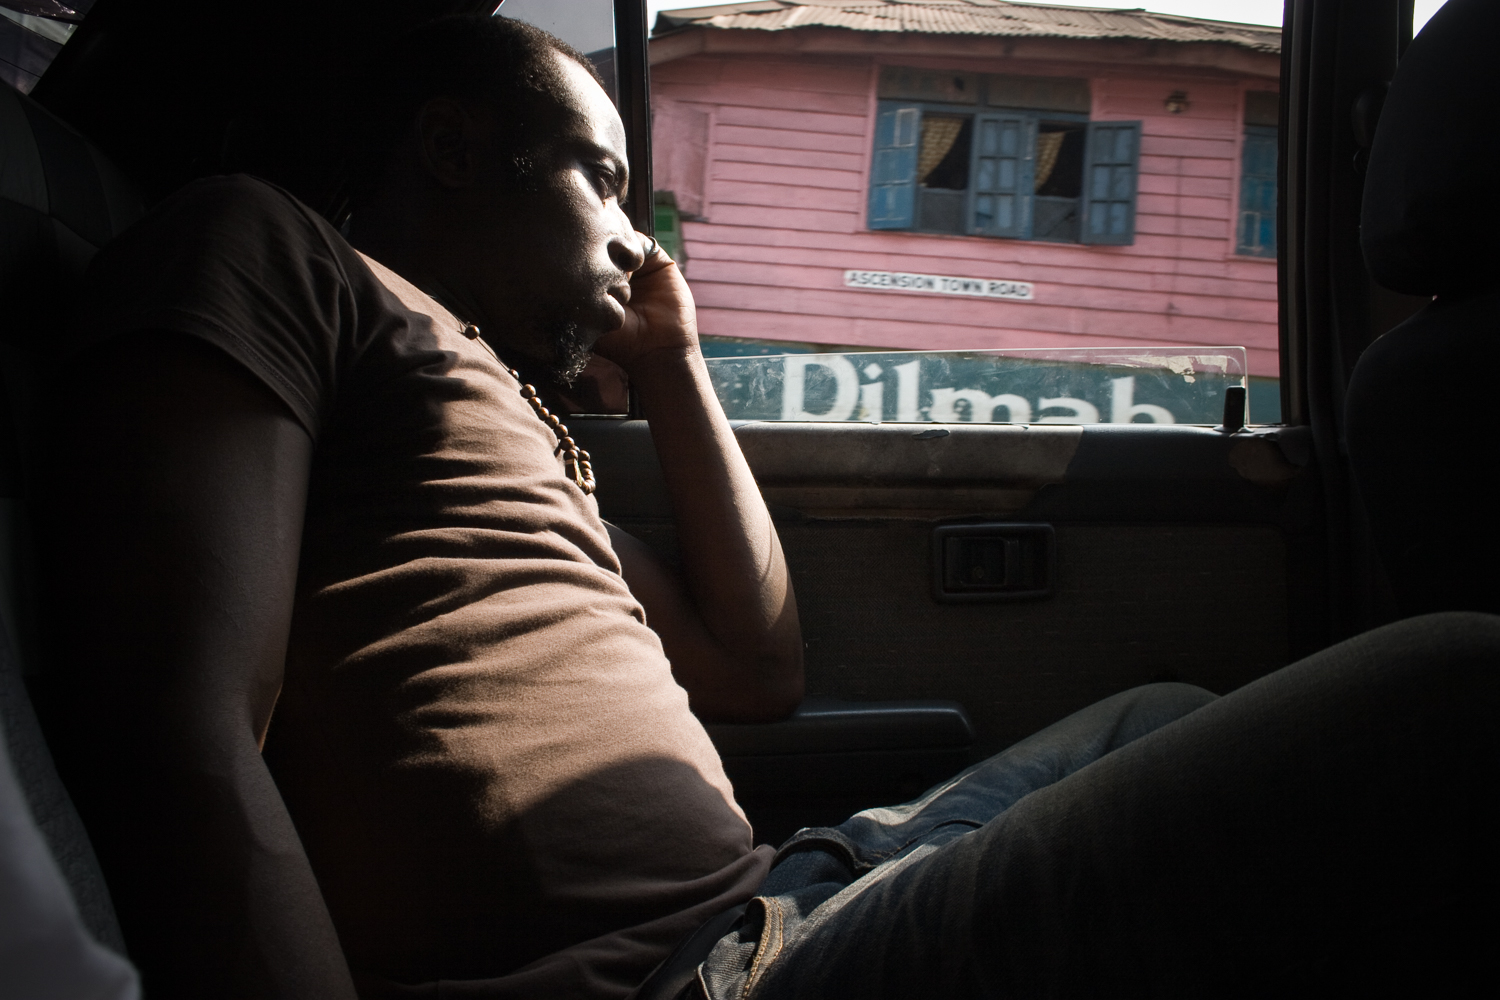 Former child soldier Francis is sitting in a taxi in Sierra Leone's capital Freetown and is looking out the window. Francis fought as a child soldier in the country's civil war from 1991 until 2002